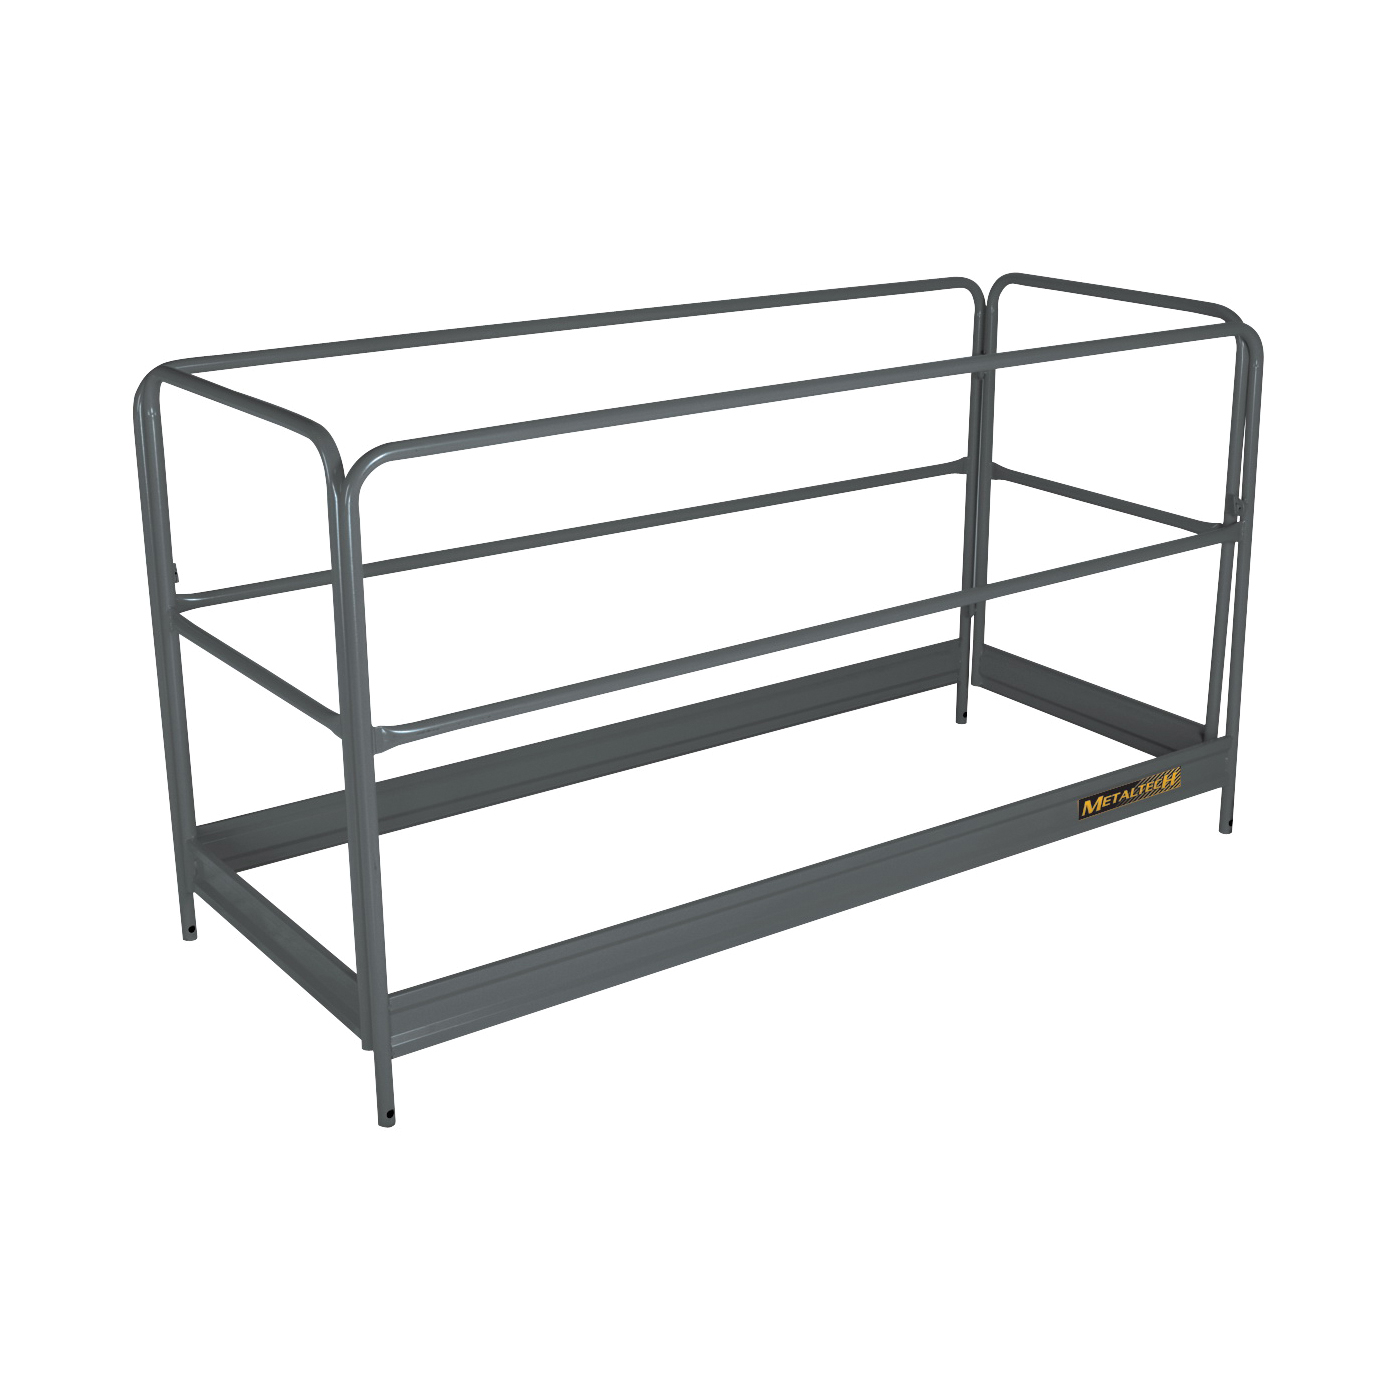 Picture of METALTECH I-BMSGR Guardrail Scaffold, Enamel, For: I-BMSS, I-CISC, I-CISCTP, I-CAISC Scaffolding Kit